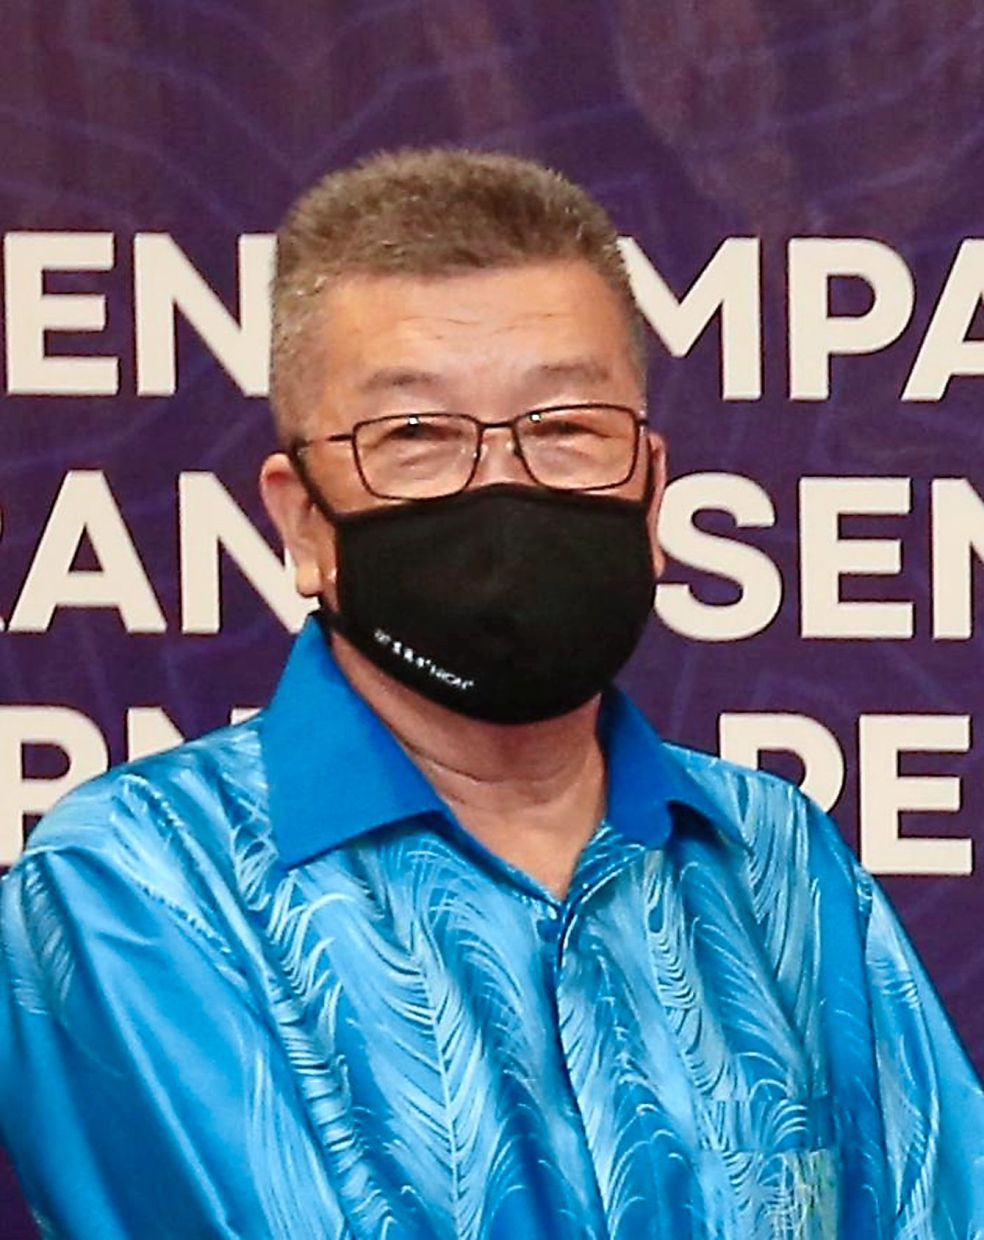 Lim says the move brings some relief to fish breeders who are hit hard by the pandemic.